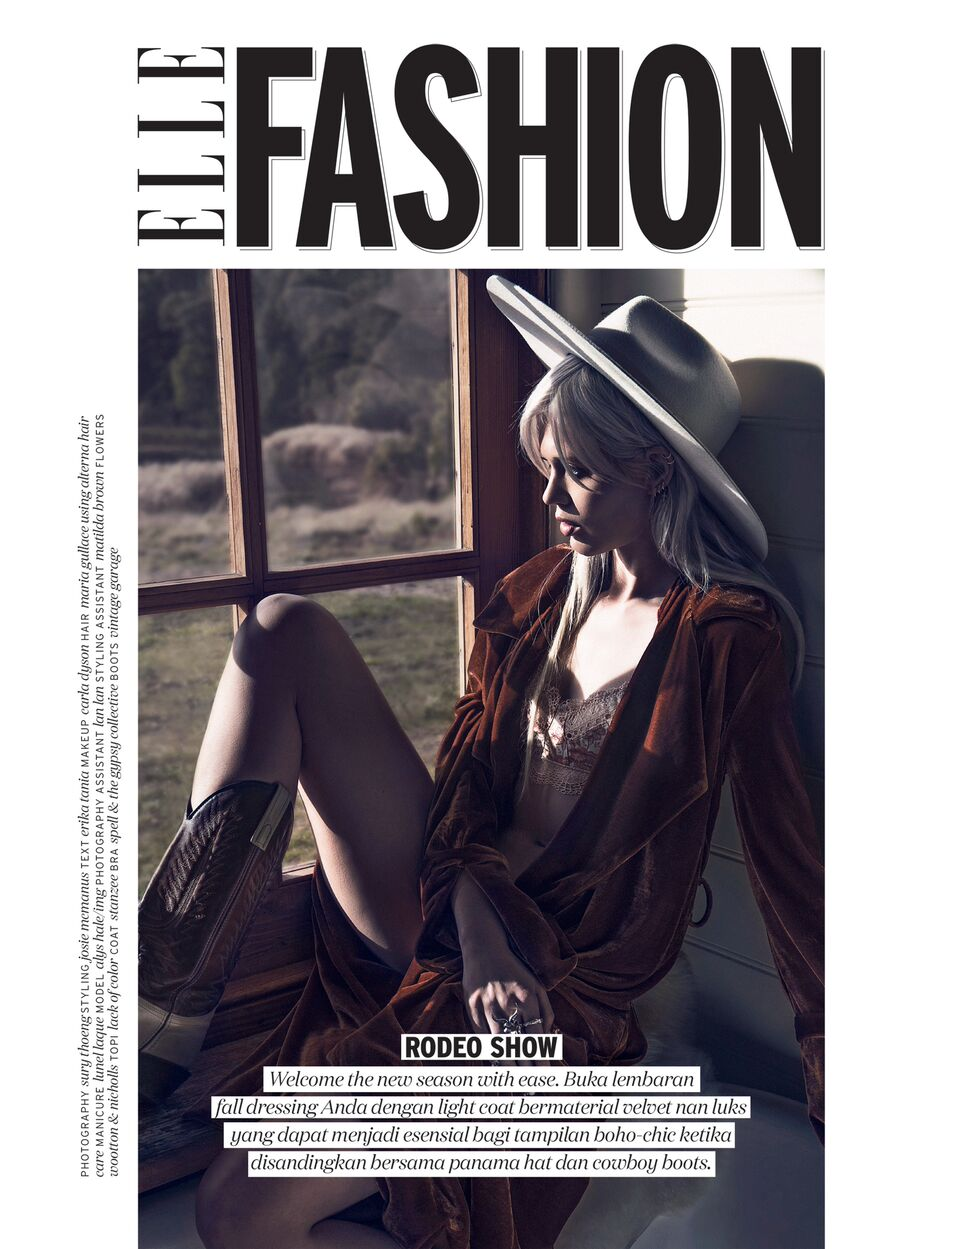 HAL-101-FASHION-OPENER_preview.jpg